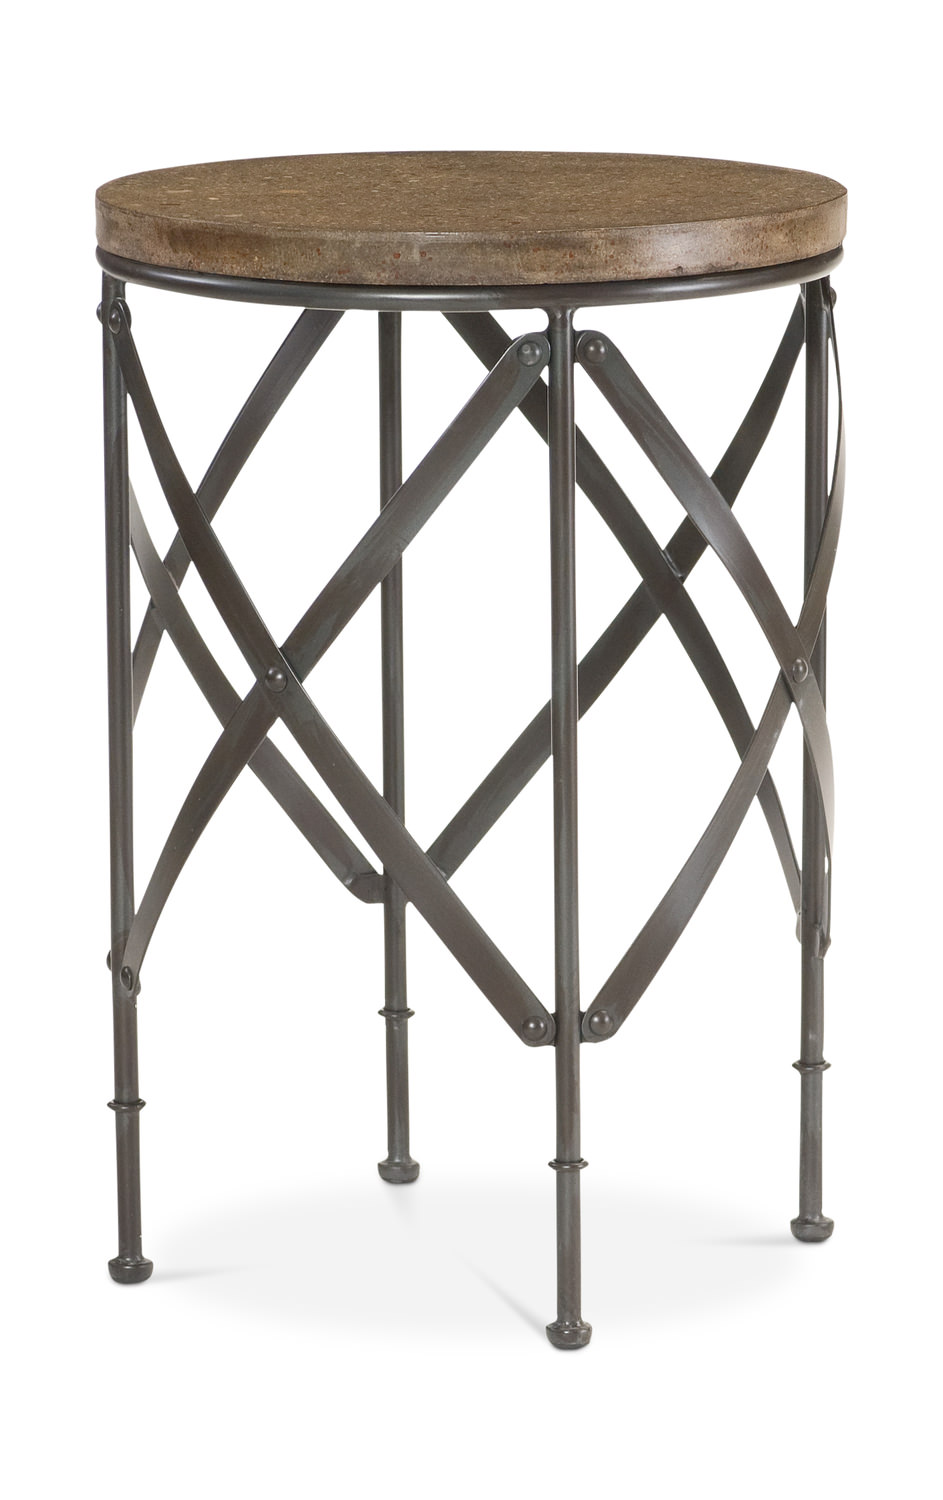 corranade bronze wrought tables accent white base table round glass metal side patio threshold target outdoor drum top iron marble full size and coffee pool umbrellas cream